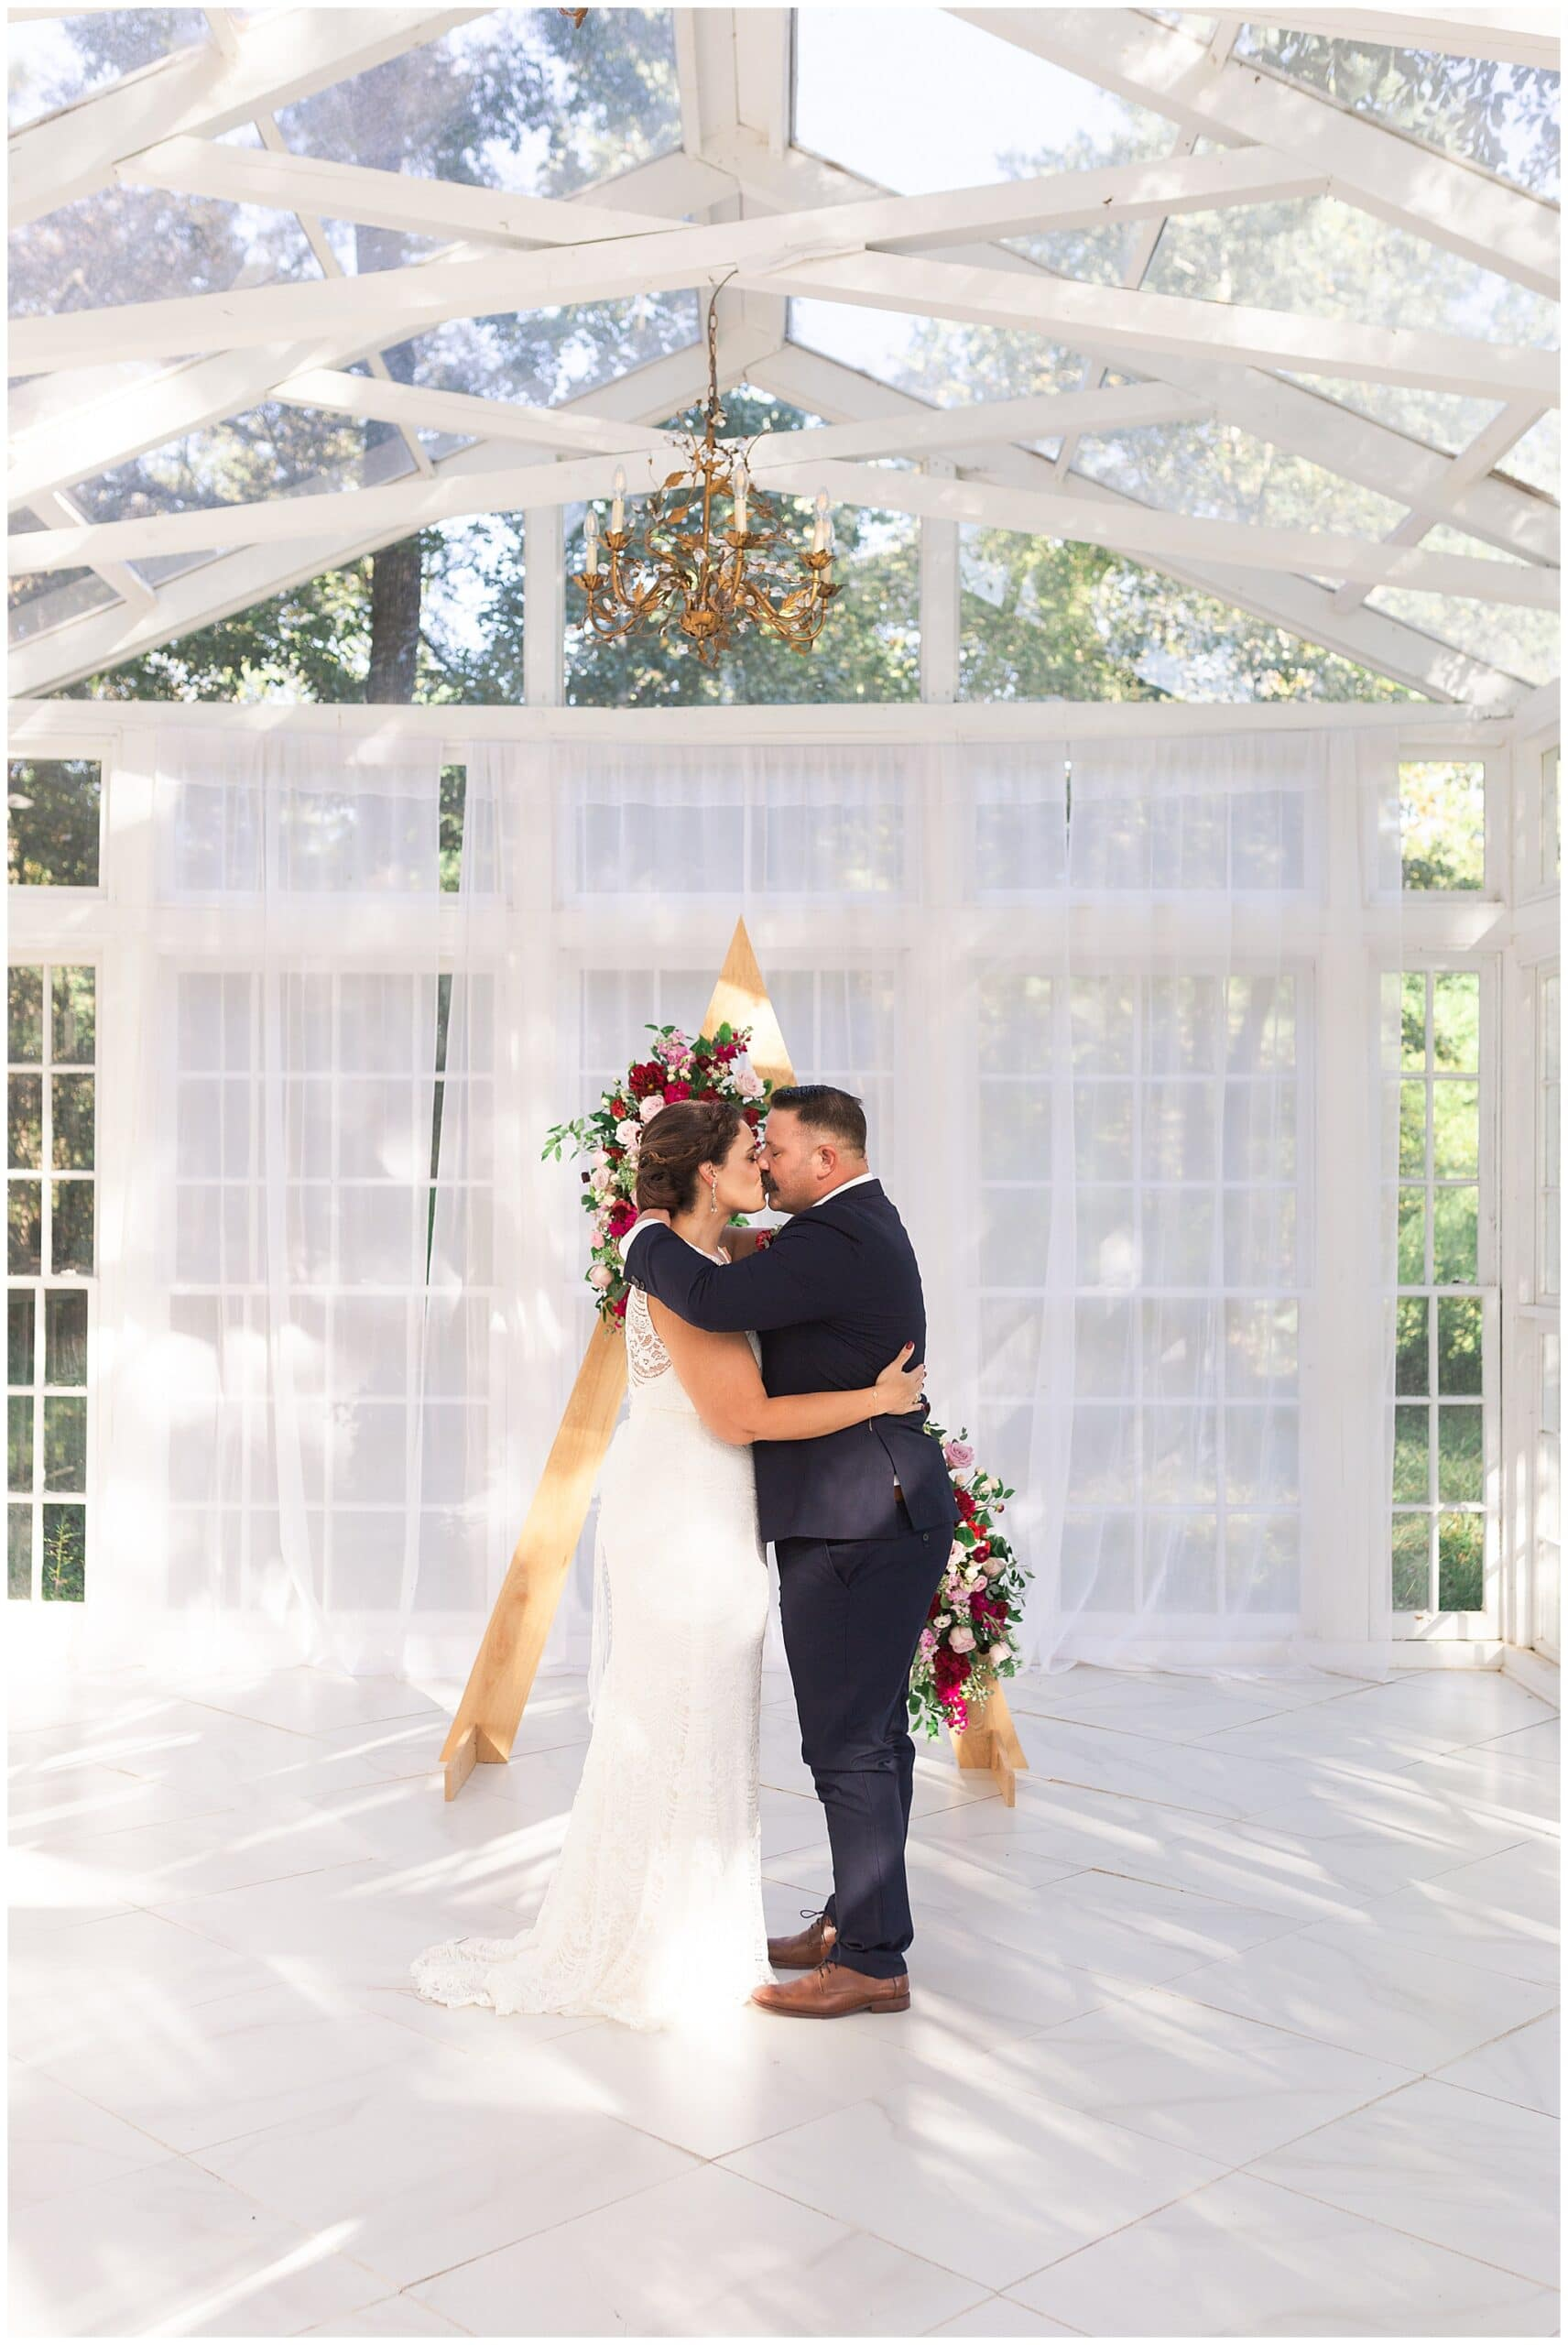 Intimate Elopements at the Oak Atelier